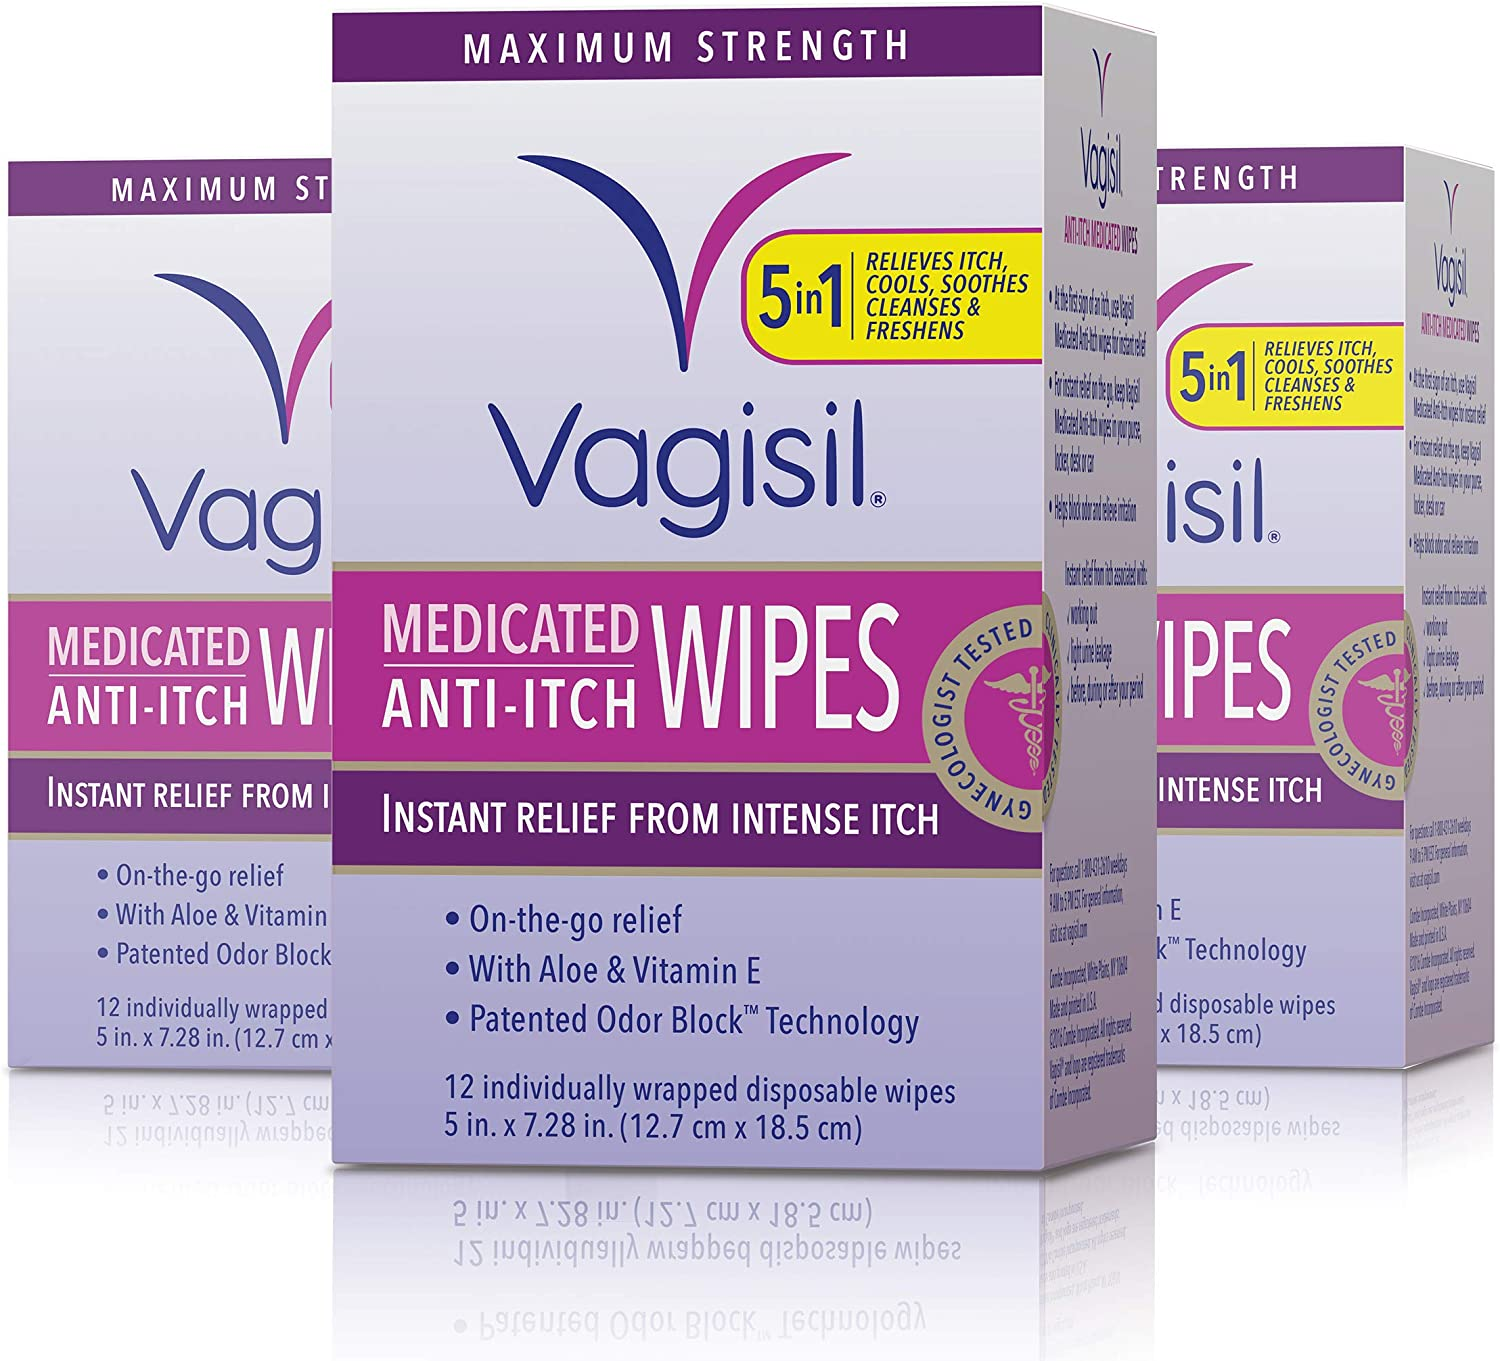 Vagisil Anti-Itch Medicated Feminine Intimate Wipes for Women, Maximum Strength, 12 Wipes in a Resealable Pouch- Pack of 3 (Packaging May Vary)